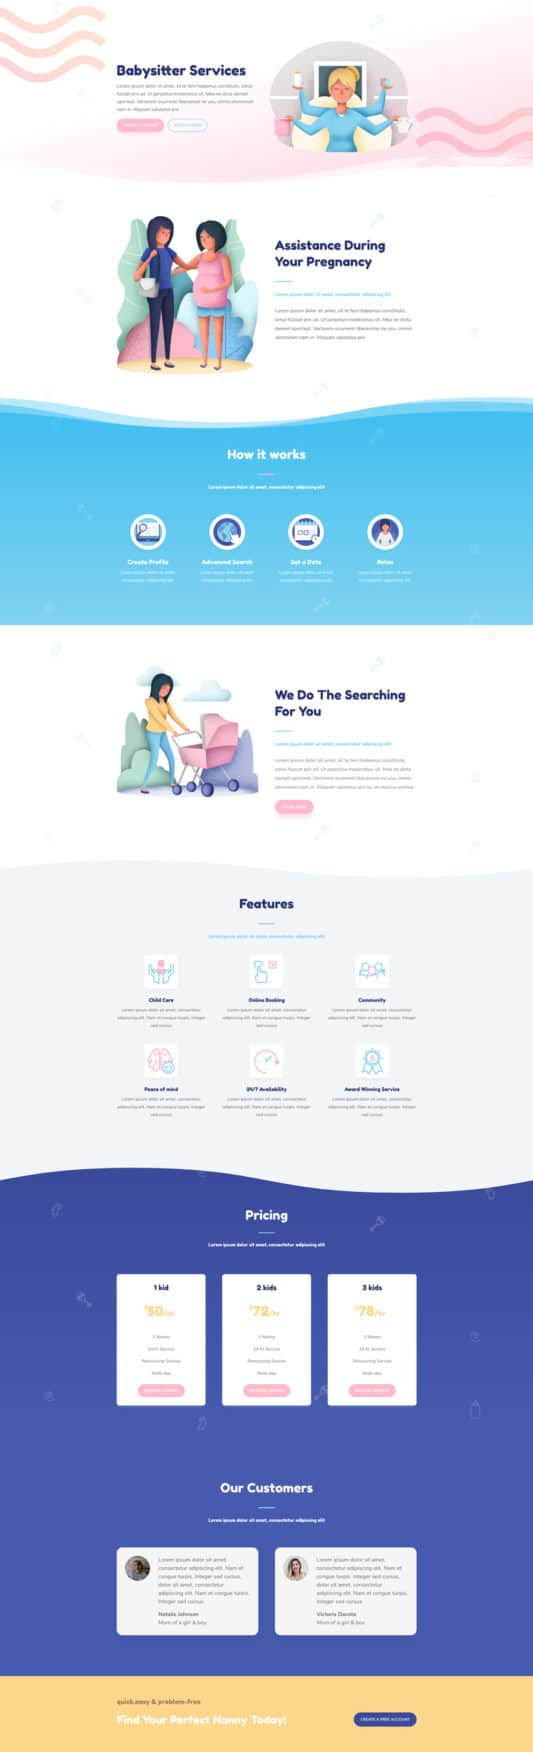 The Babysitter Page Style: Homepage Design 1